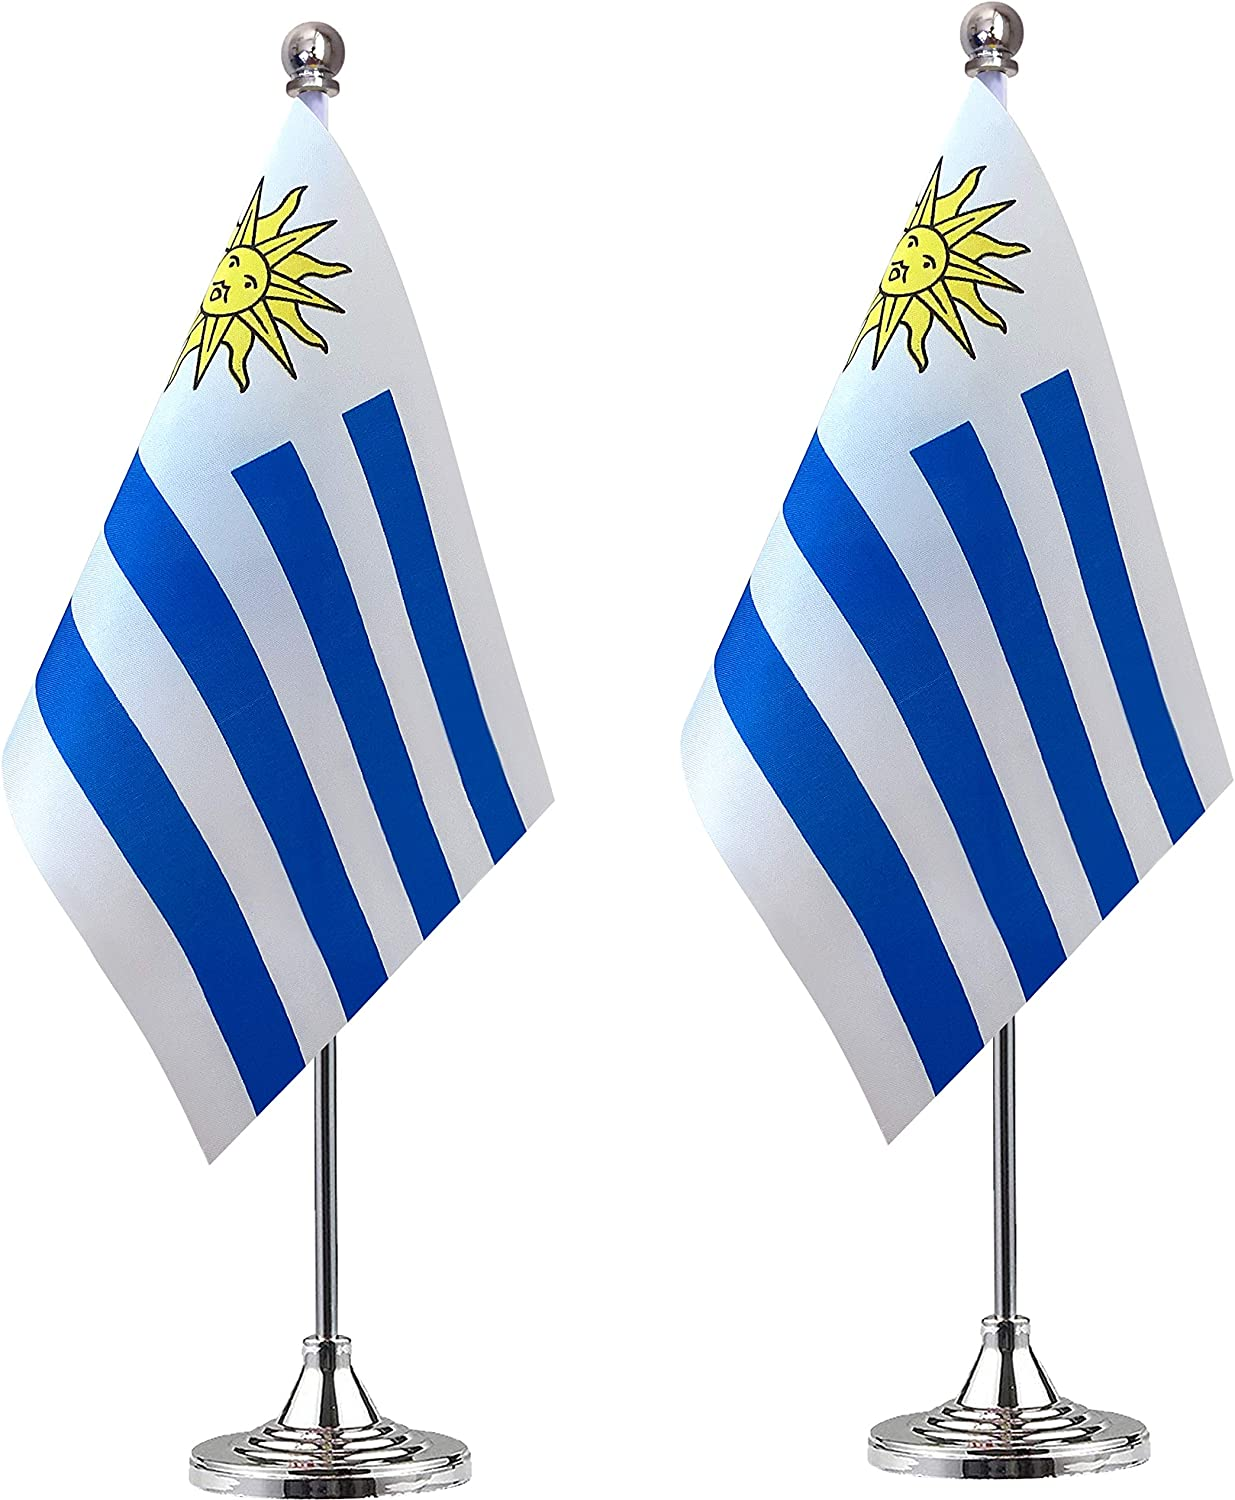 WEITBF Uruguay Desk Flag Small Mini Uruguayan Office Table Flag with Stand Base Decorations,2 Pack